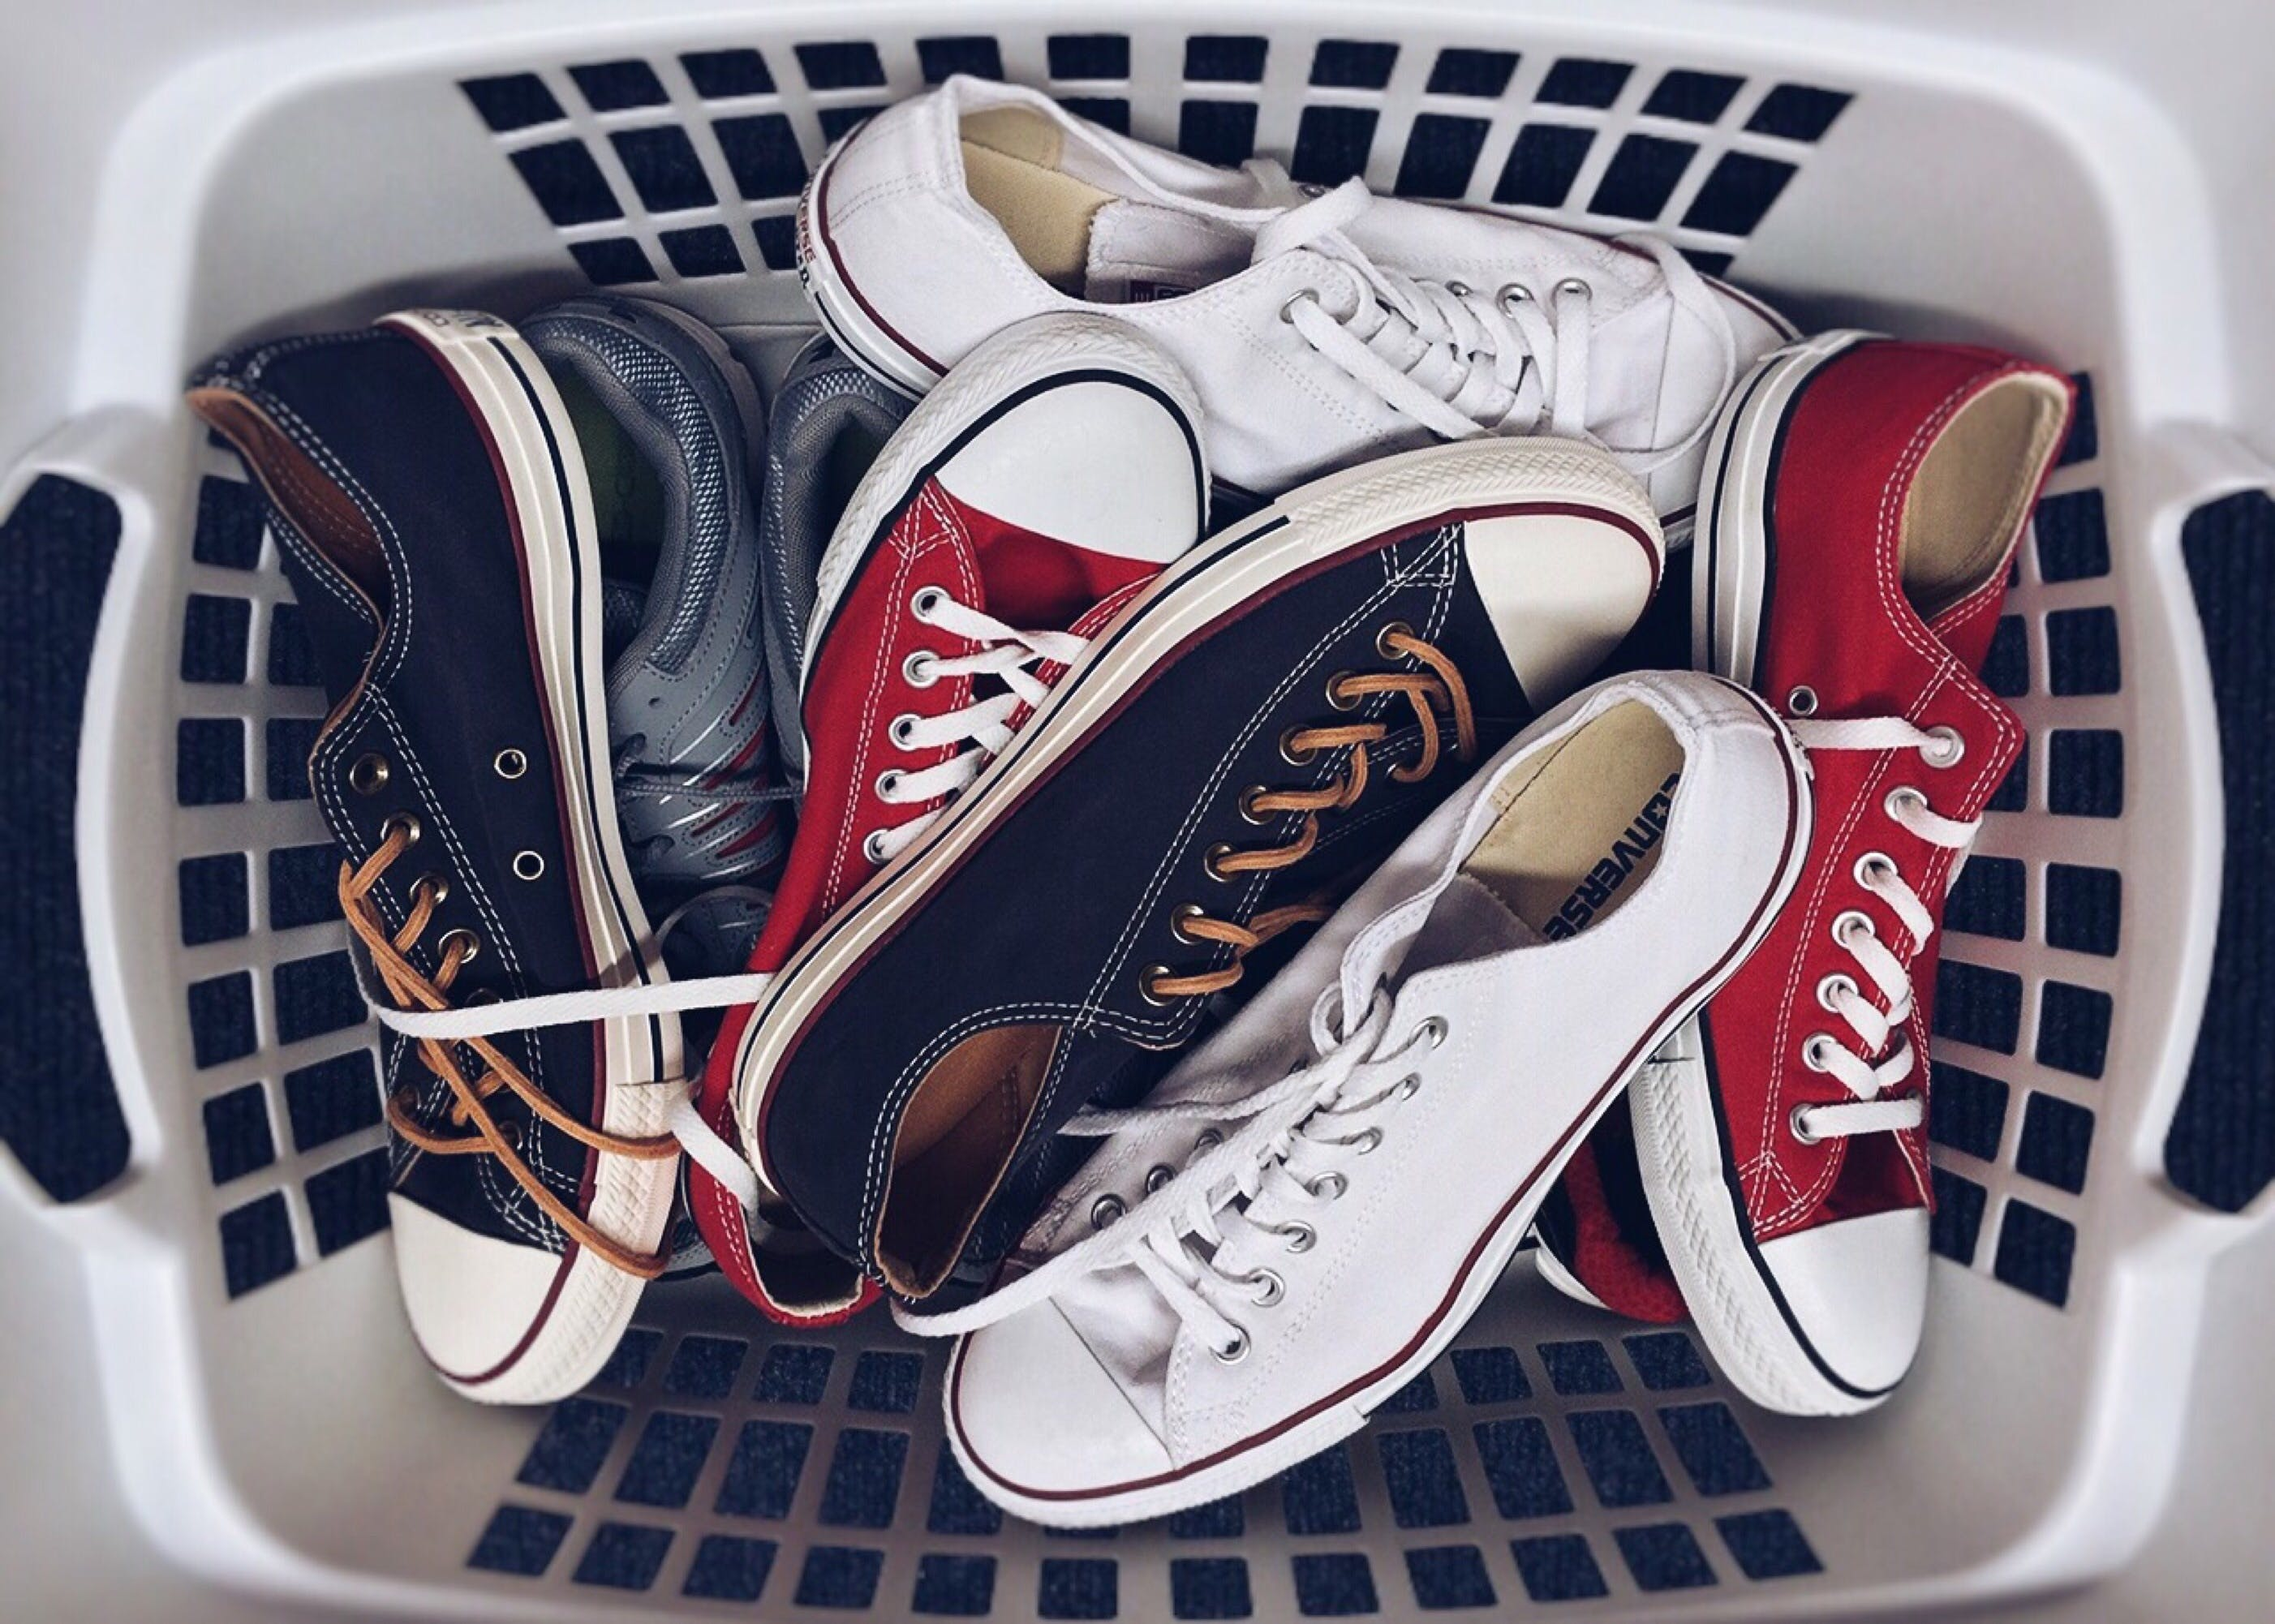 Laundry basket filled with shoes